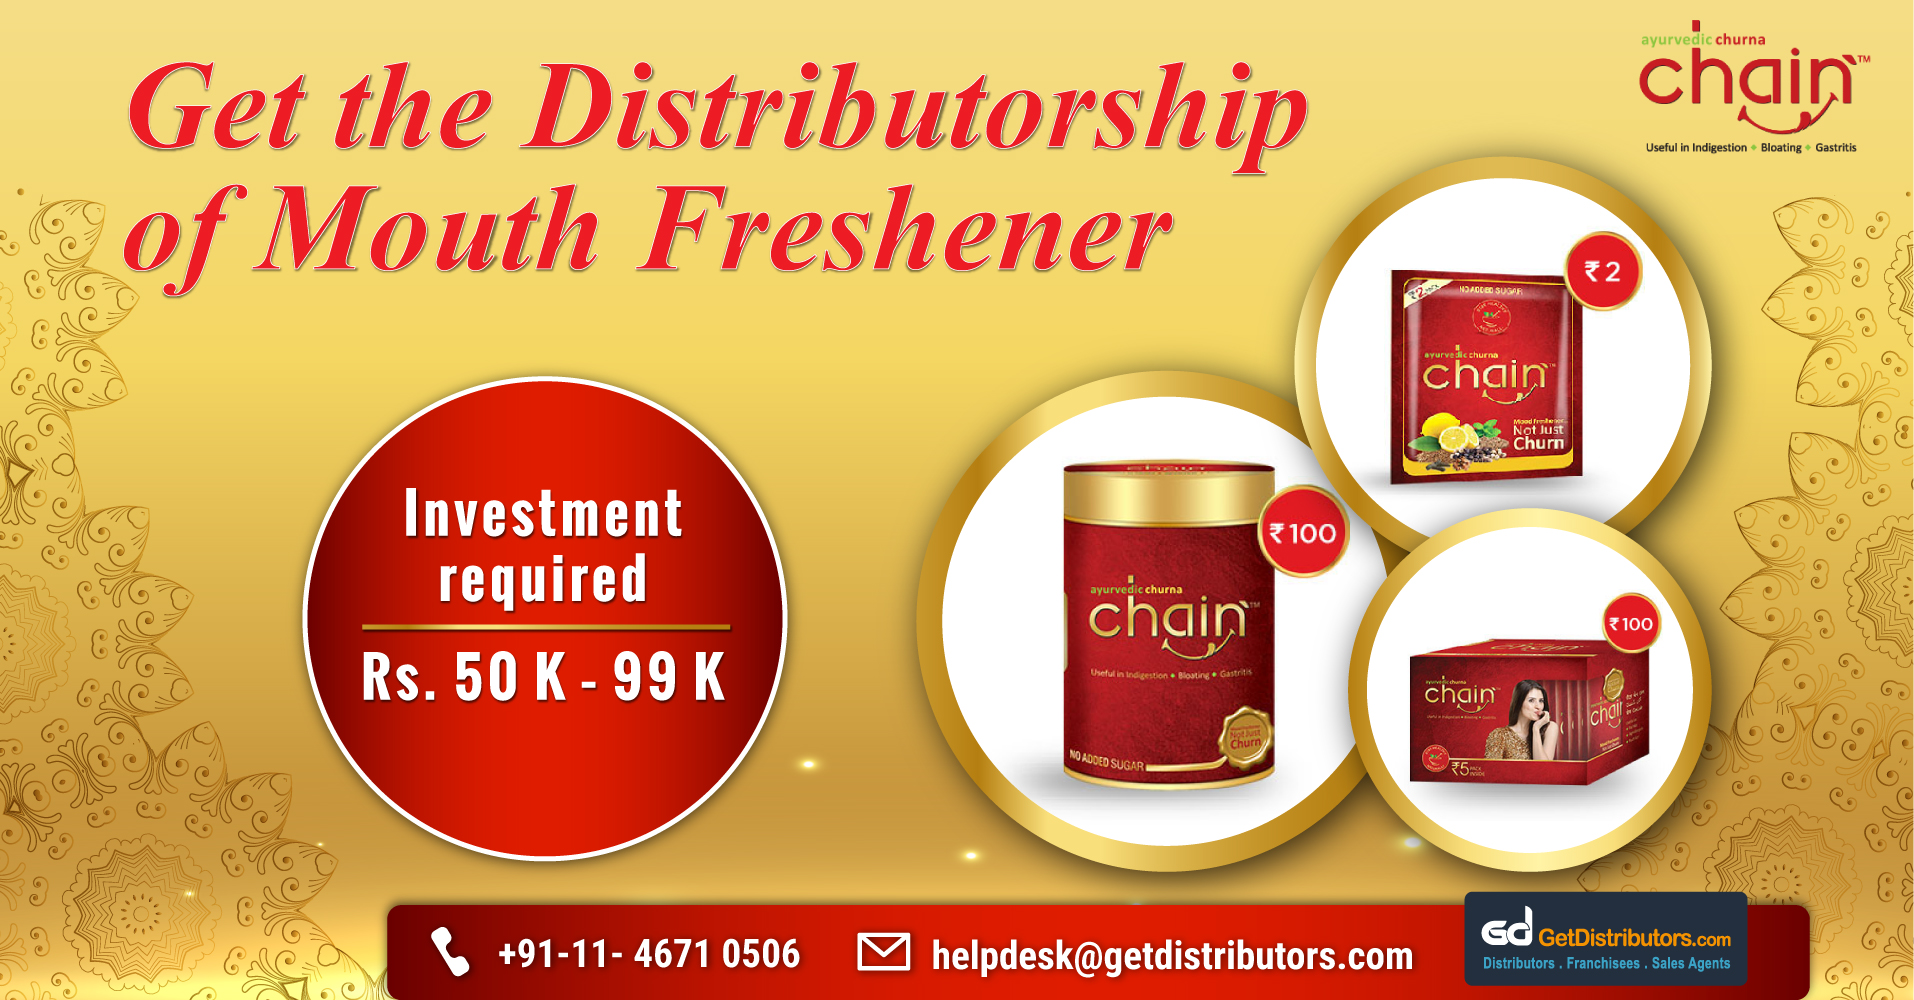 How To Get The Distributorship For Chain Churna (Mouth Freshener)